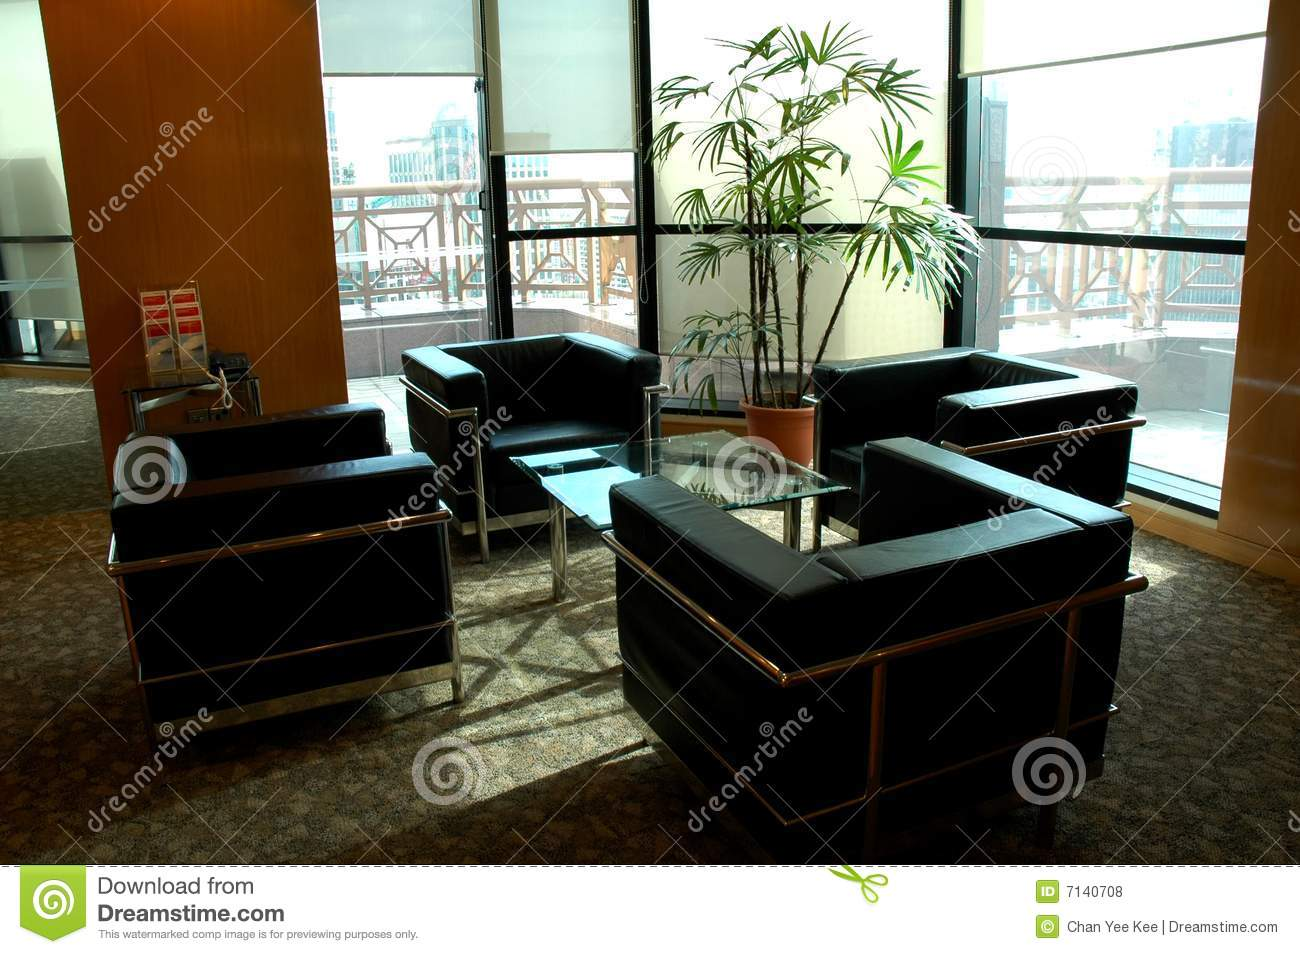 Modern office building interior royalty free stock photos for Modern office building interior